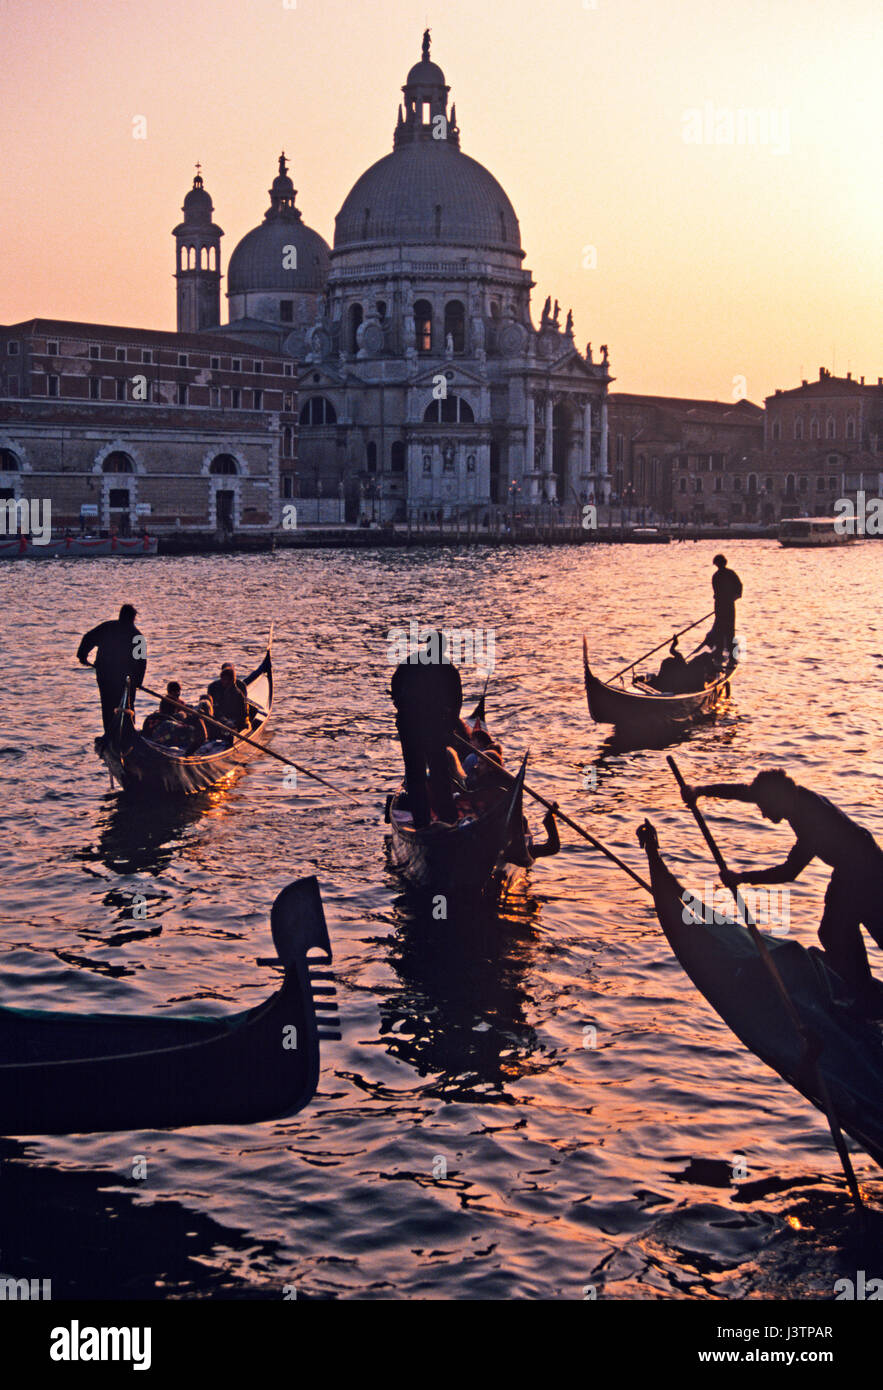 Venice a view across the lagoon to the church of Santa Maria della Saute in the evening sunset light  with Gondolas - Stock Image